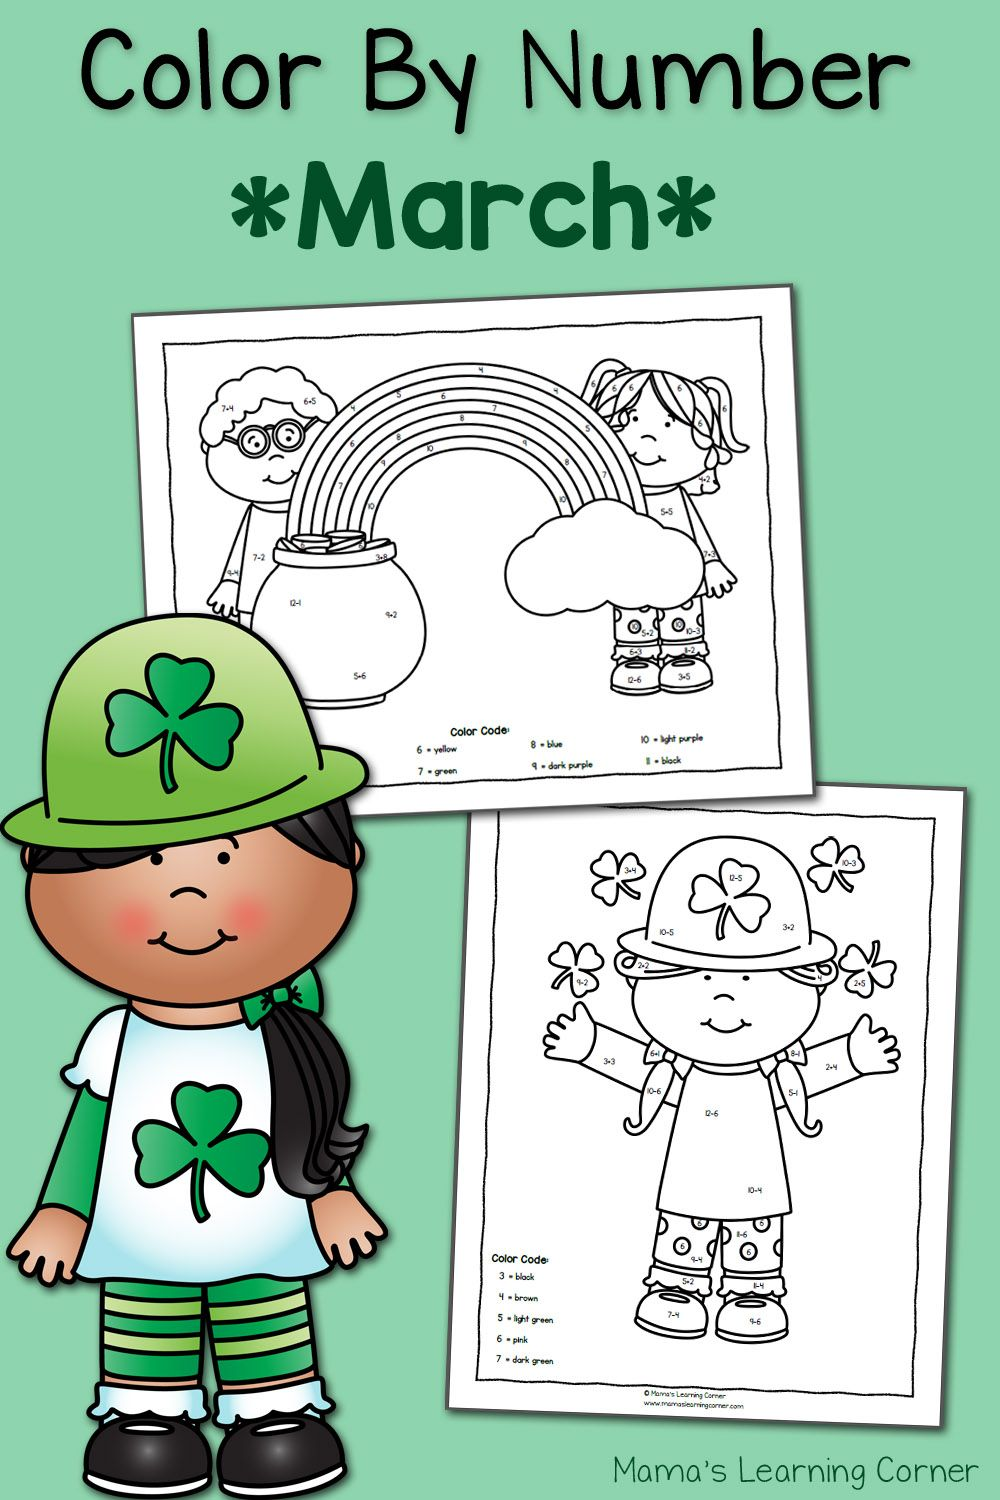 Color by Number Worksheets for March: St. Patrick\'s Day! | Number ...